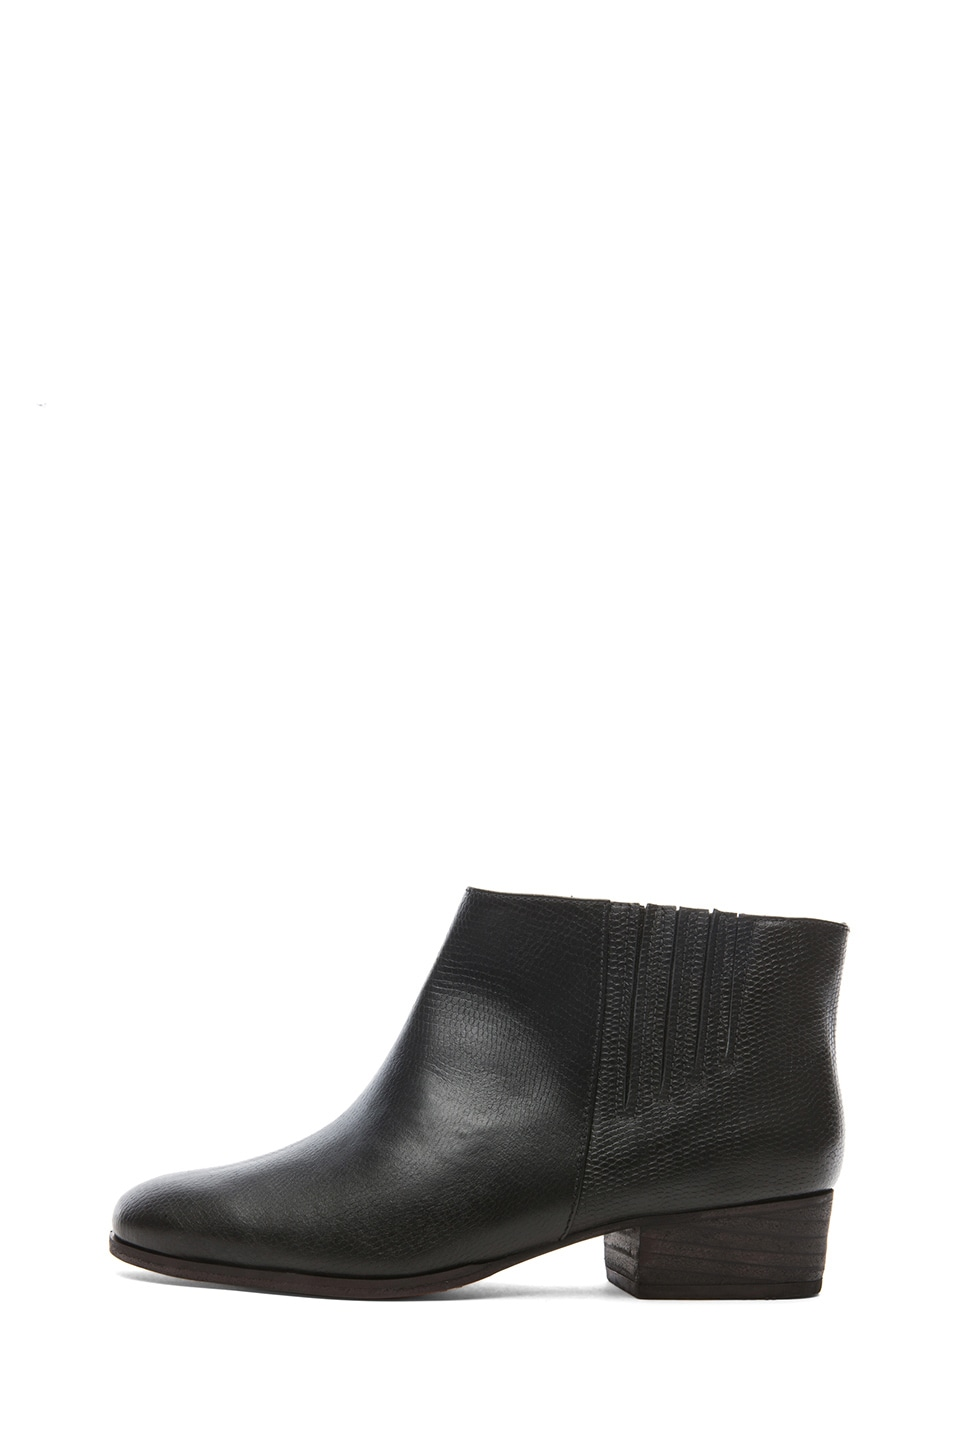 Image 1 of Rachel Comey Coy Leather Bootie in Black